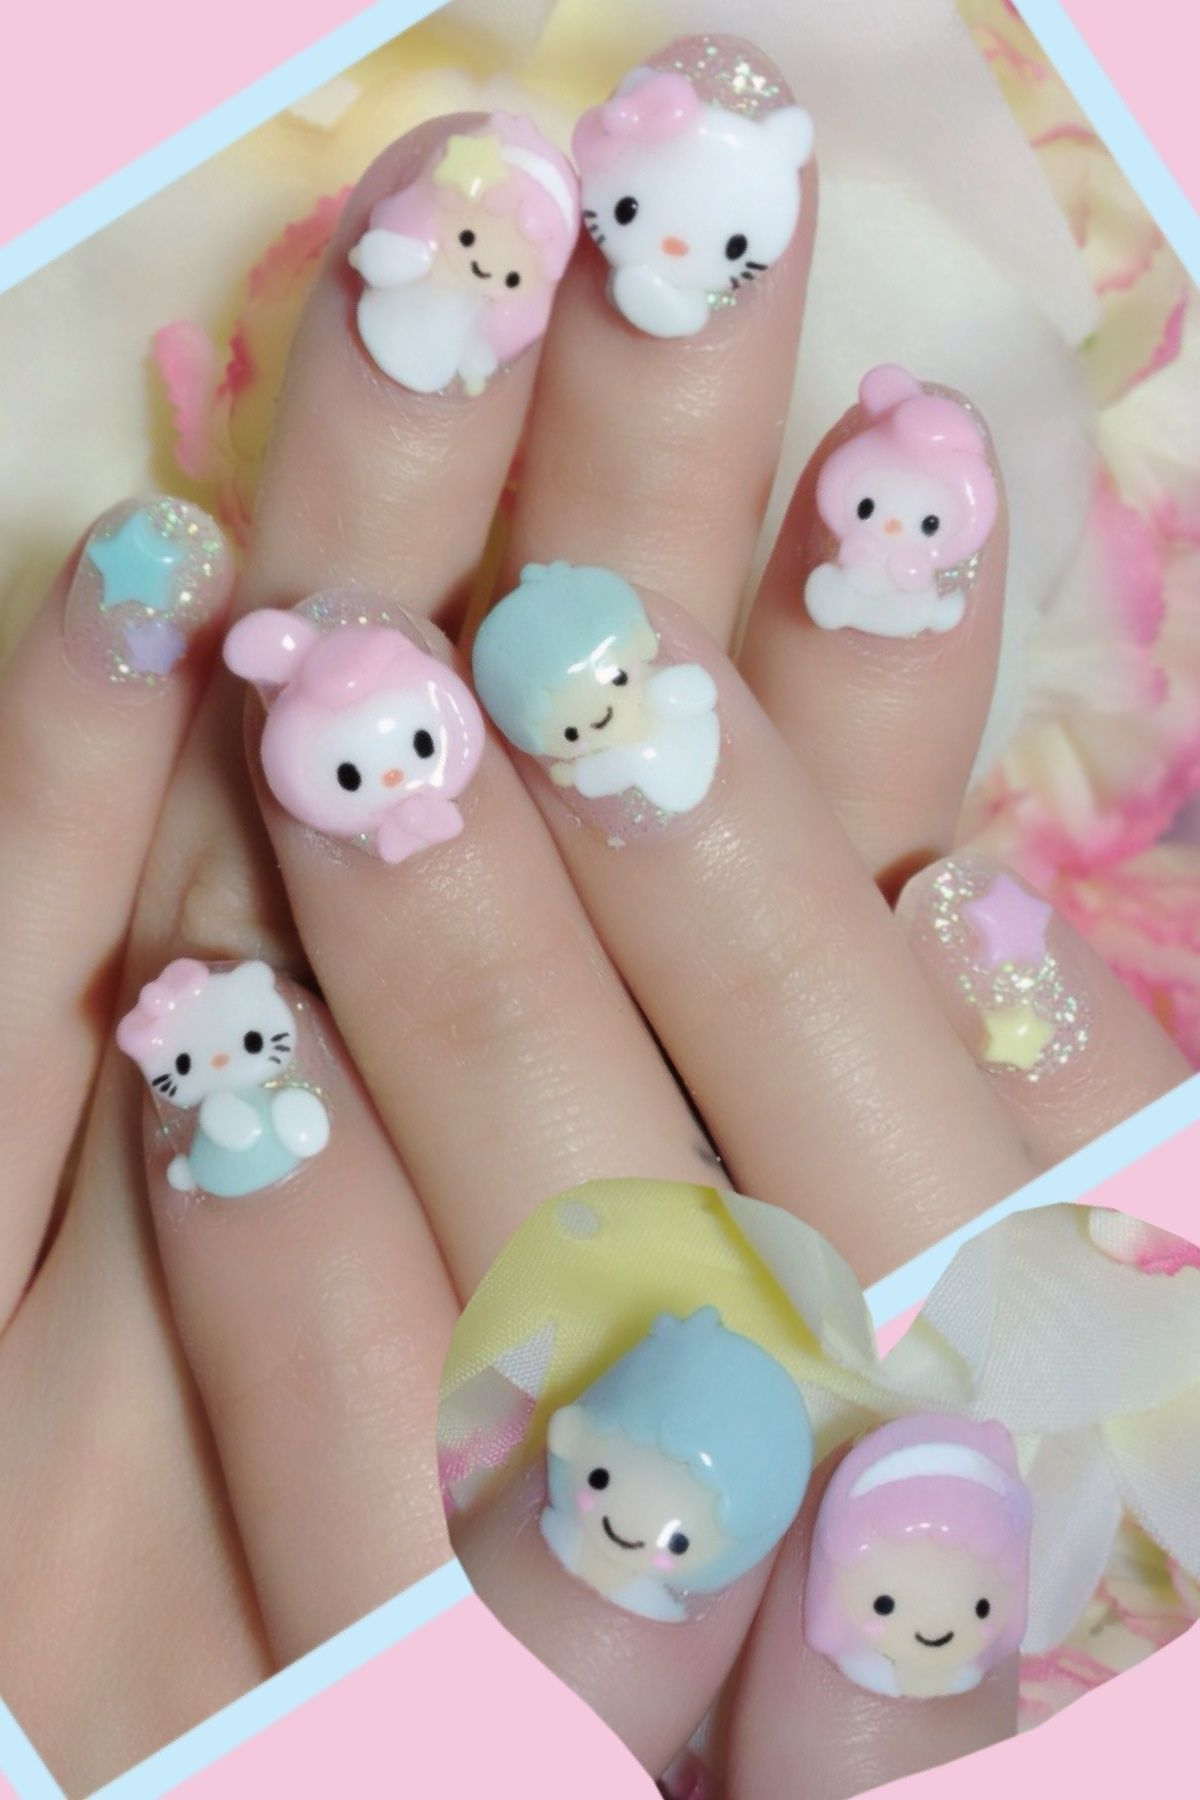 Sanrio Nail Art By Nakayama Chieko Makeup And Cosmetics